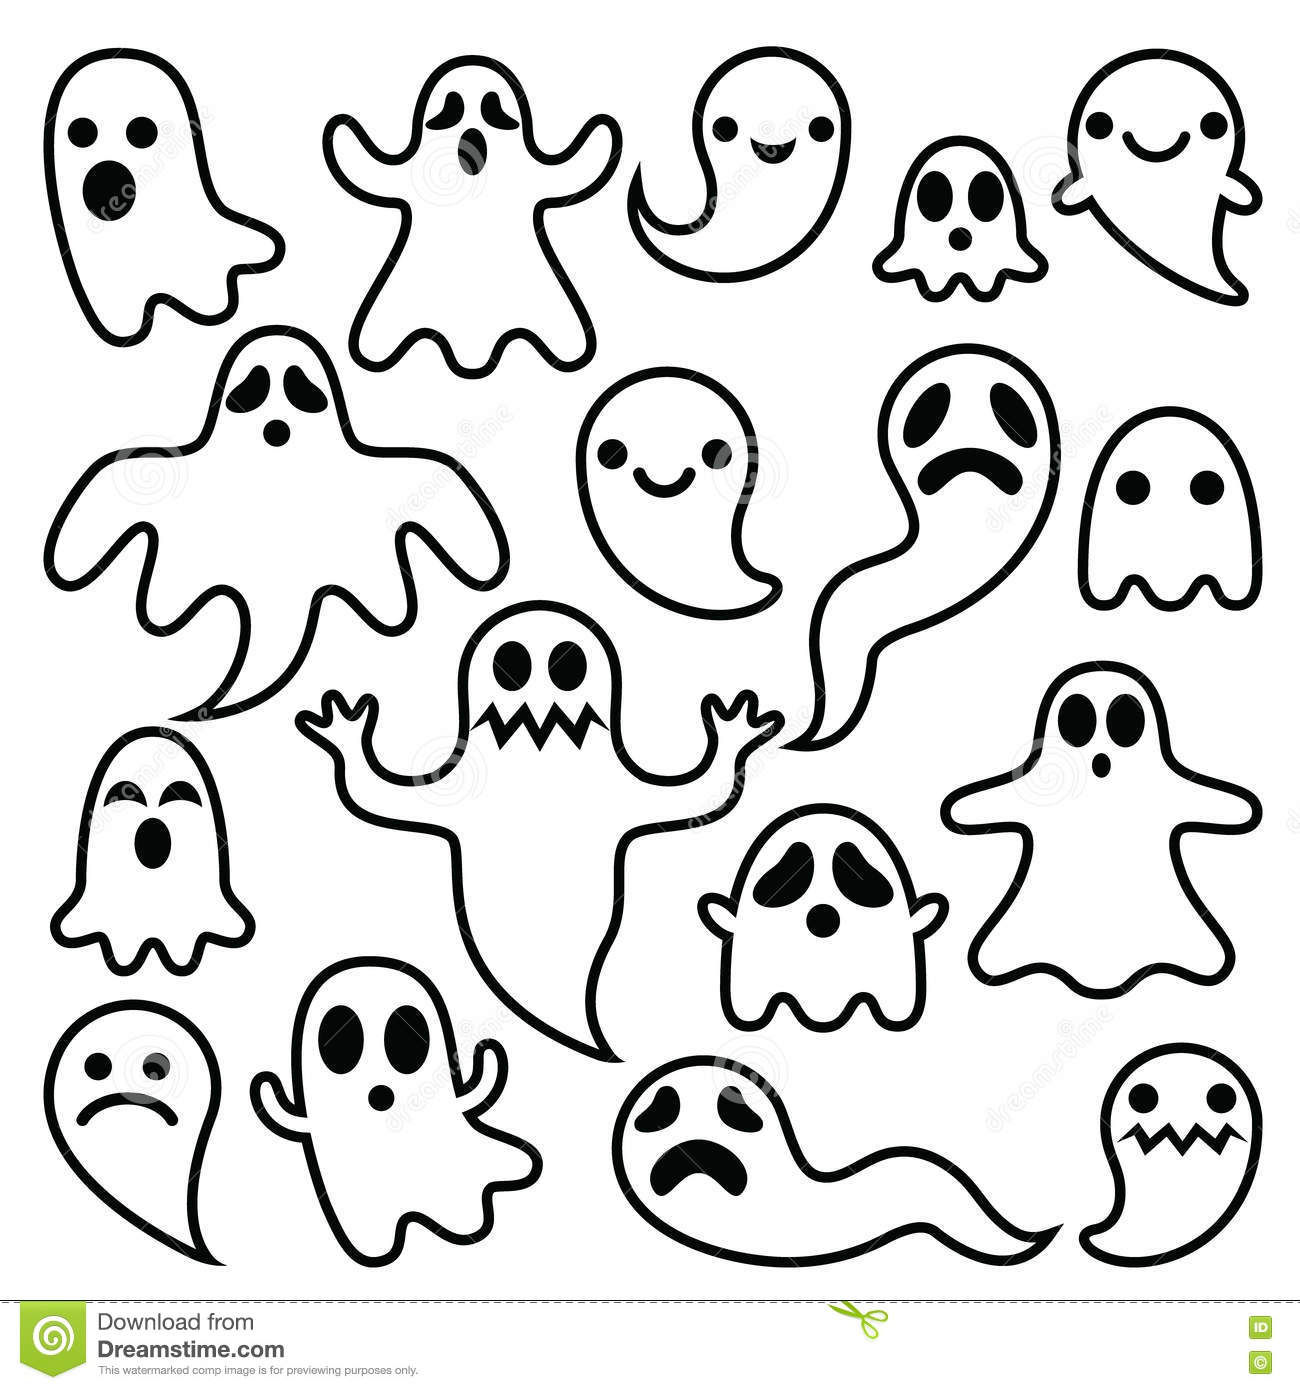 Fun Scary Halloween Coloring Pages Costumes 2012 likewise  together with Characters Icons Easter Theme Cartoon Style furthermore I1 cpcache   product 50166696 lucky charm kids hoodie as well plete Guide To Draw Vector Skulls Illustrator. on scary halloween things to make